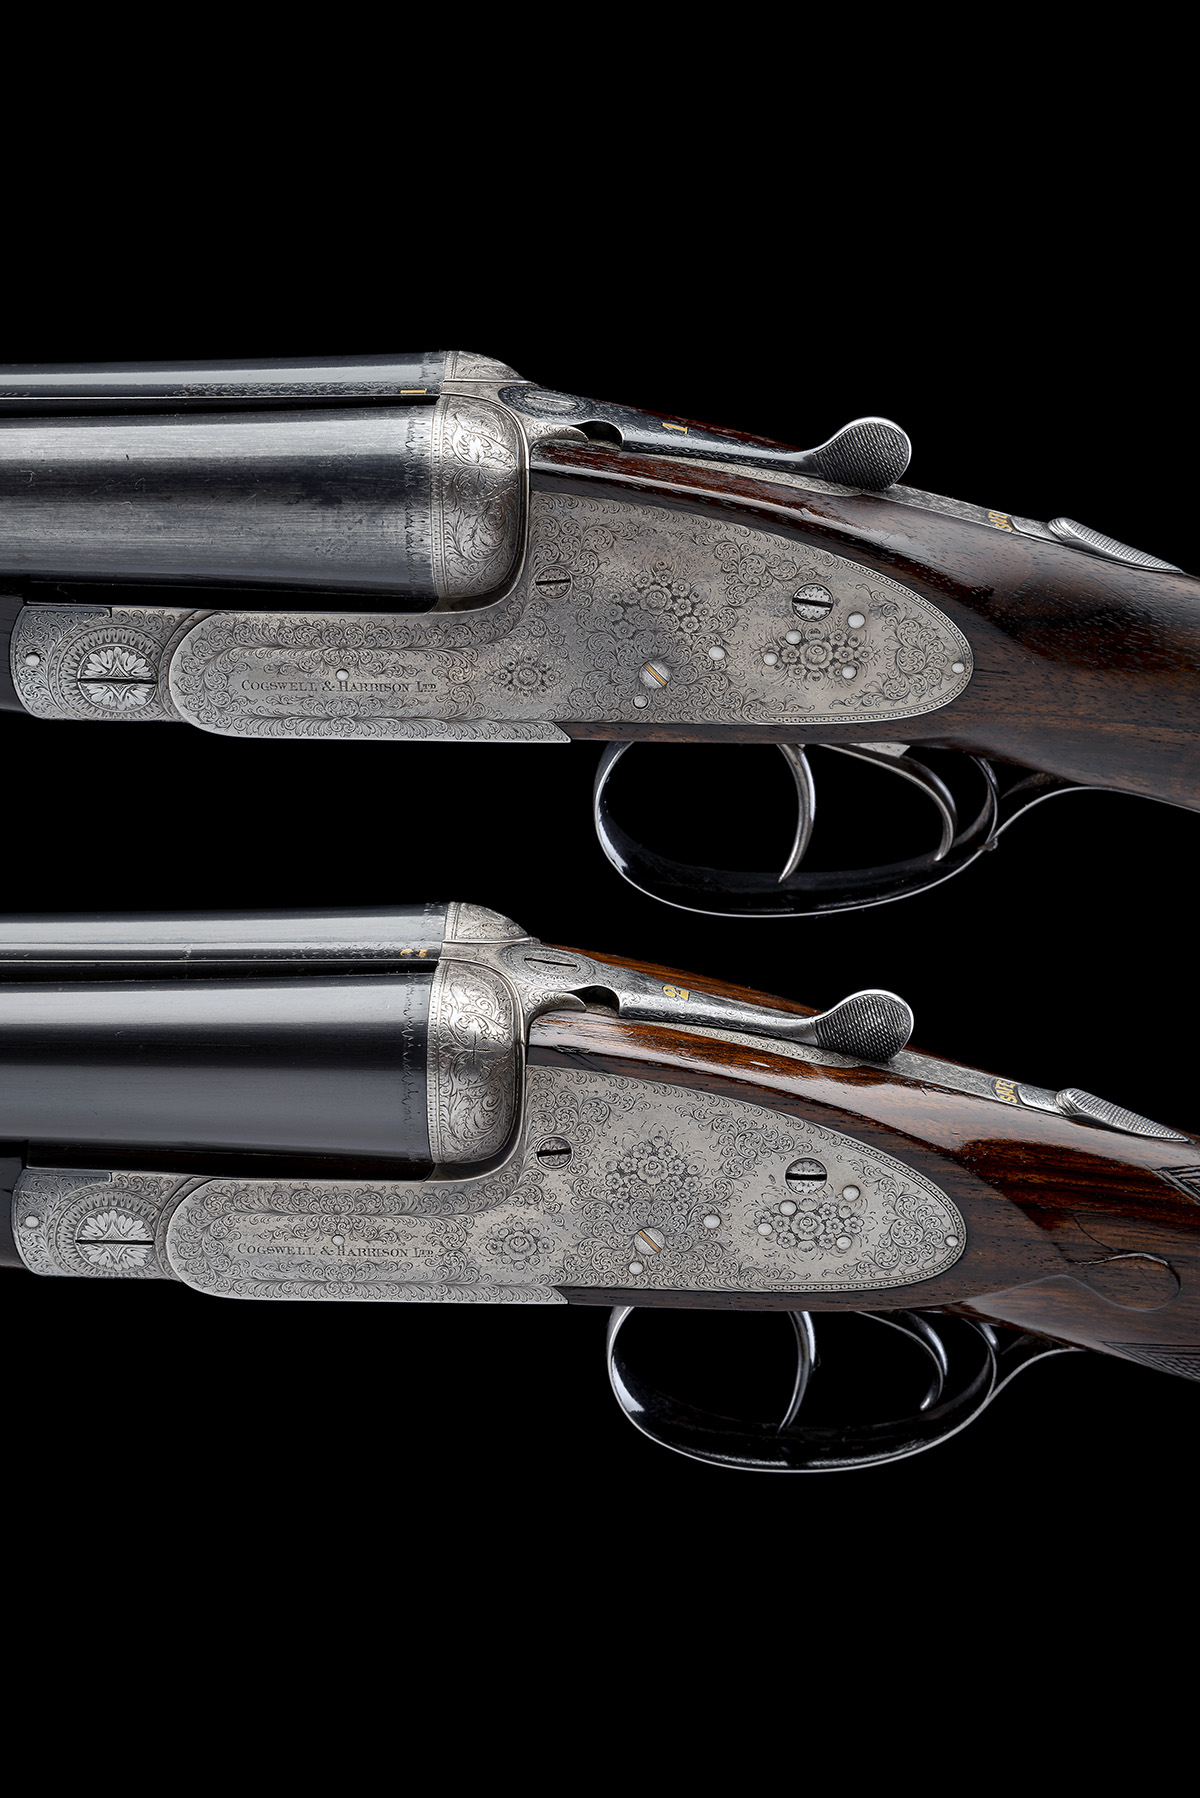 COGSWELL & HARRISON A PAIR OF 12-BORE 'EXTRA QUALITY VICTOR' SIDELOCK EJECTORS, serial no. 42510/ - Image 4 of 10